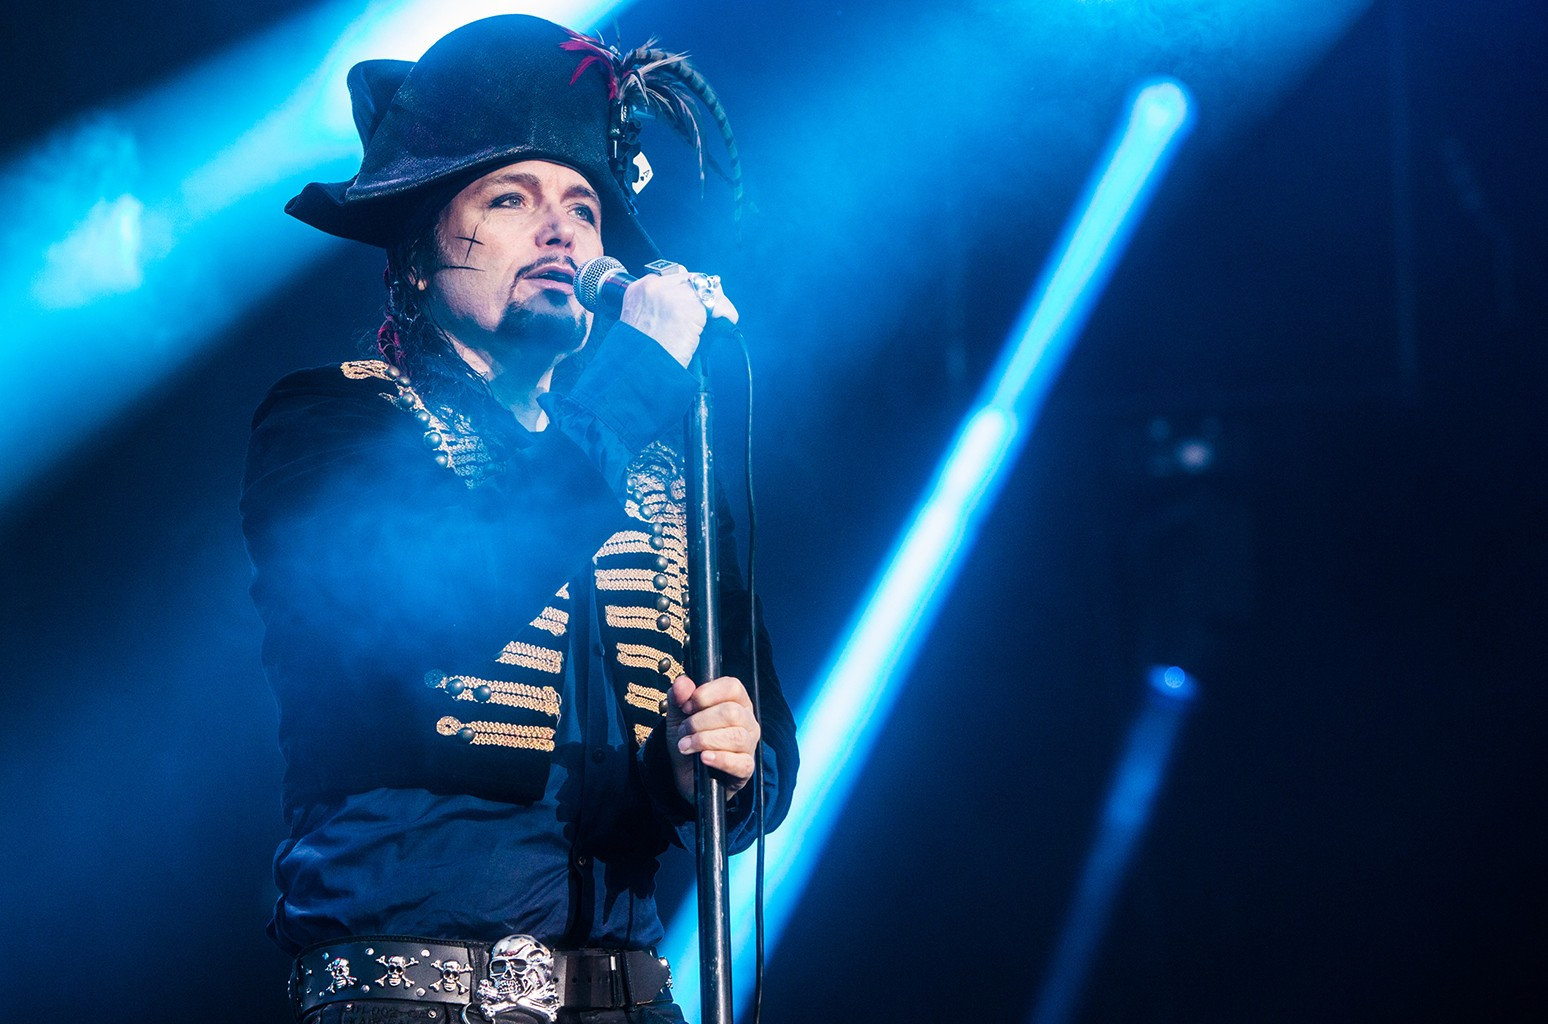 Adam Ant performs at Scone Palace on July 24, 2016 in Perth, Scotland.